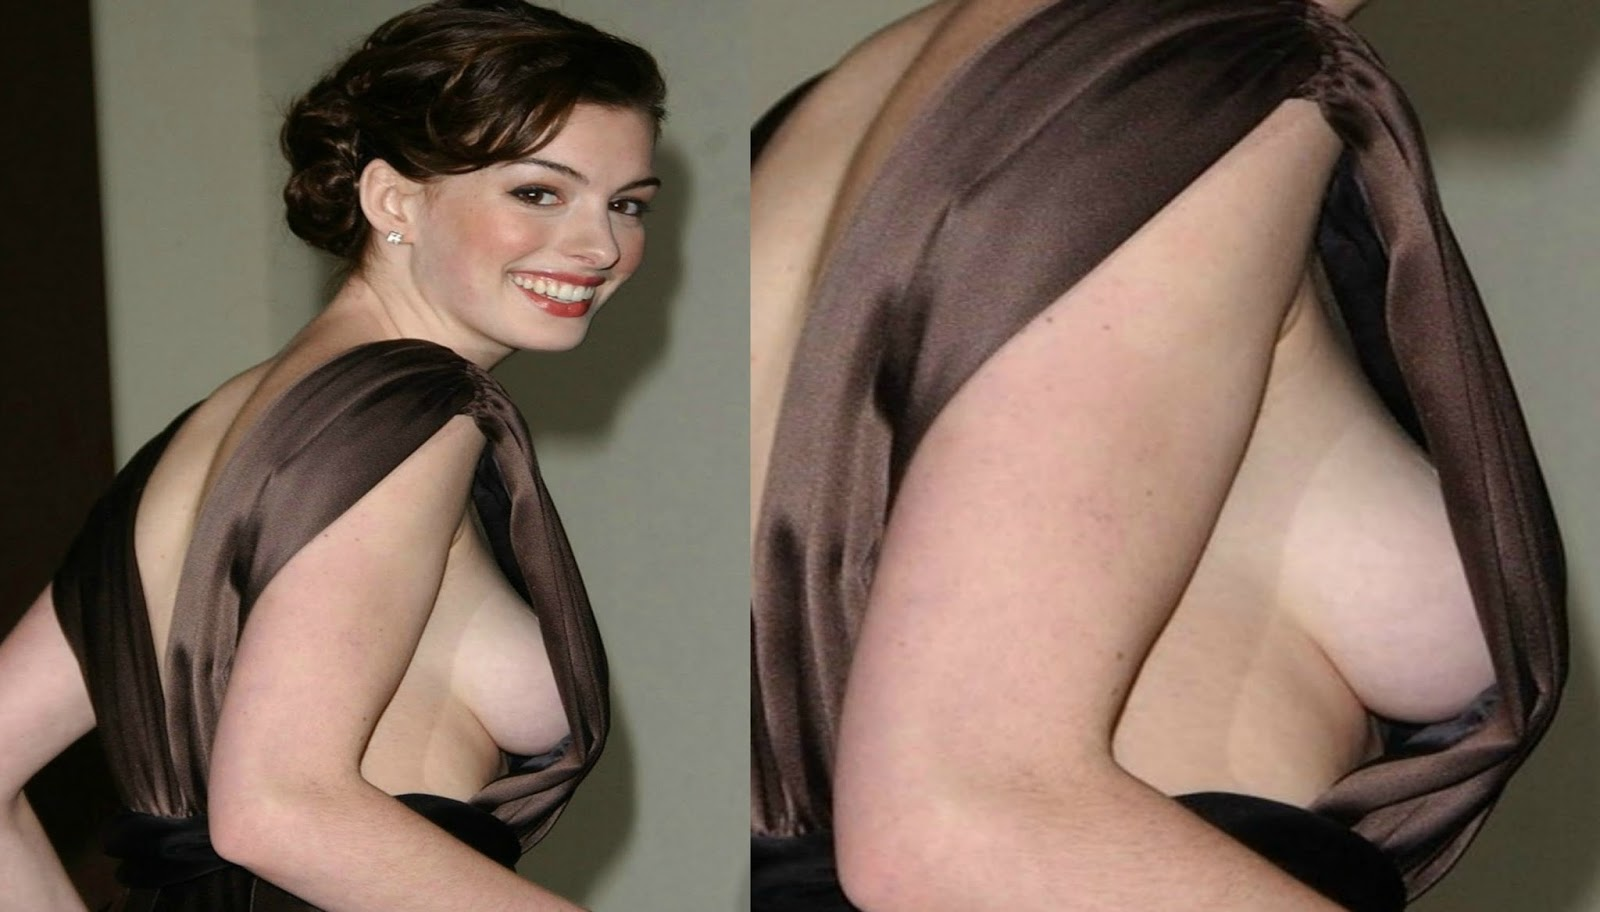 Anne Hathaway Leaked Pictures photo 2